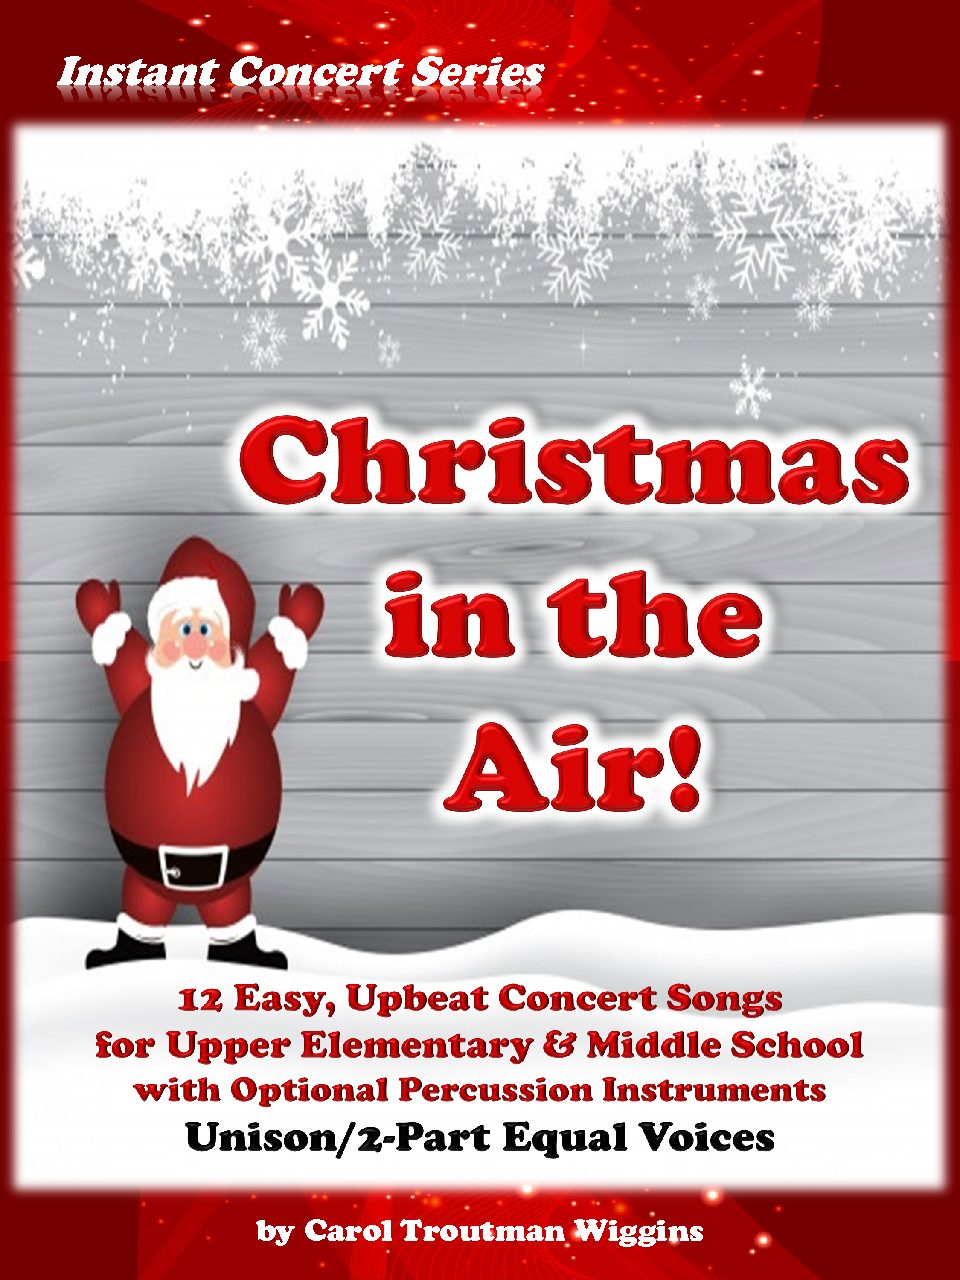 Christmas In the Air! (Unison/2-Part)